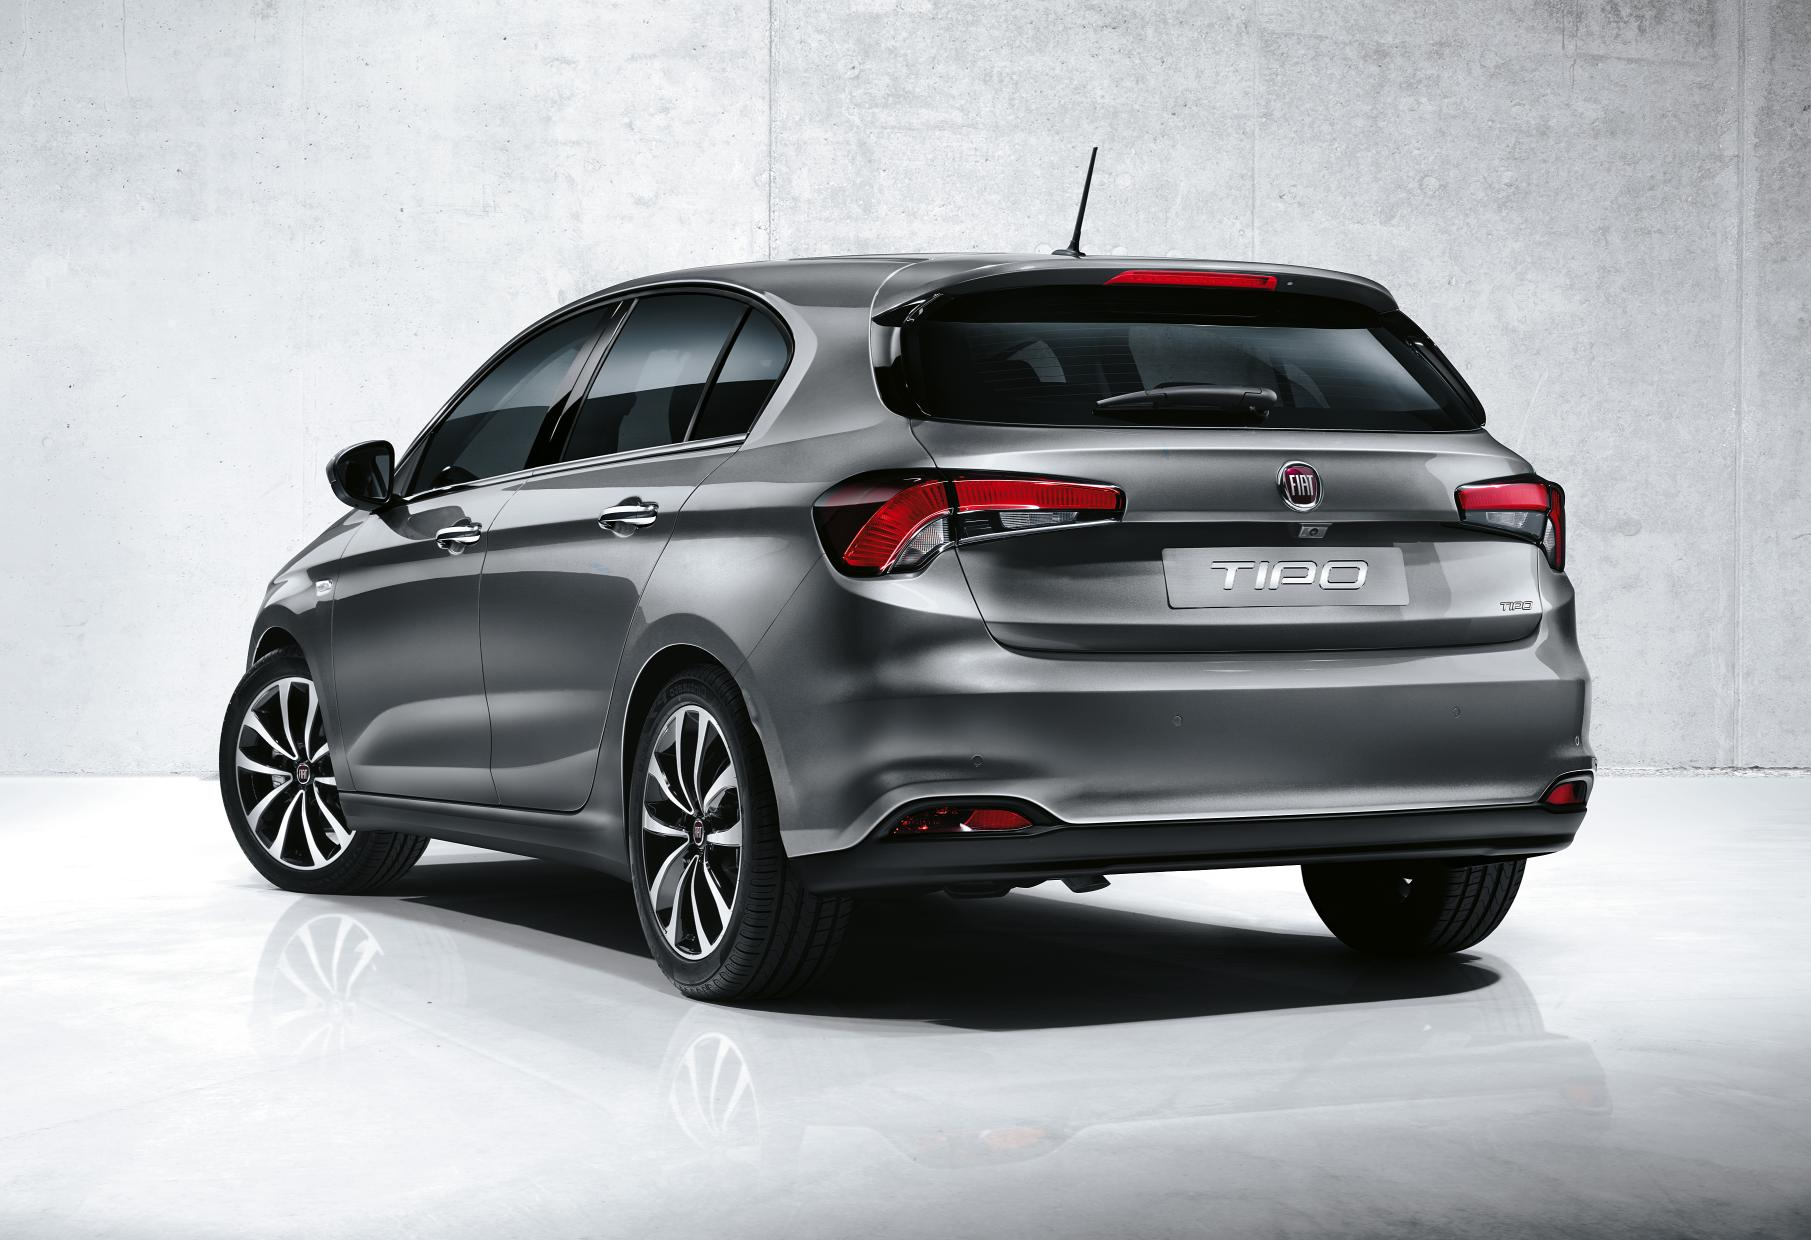 2016 Fiat Tipo Hatchback Priced At  U20ac12 750 In Italy